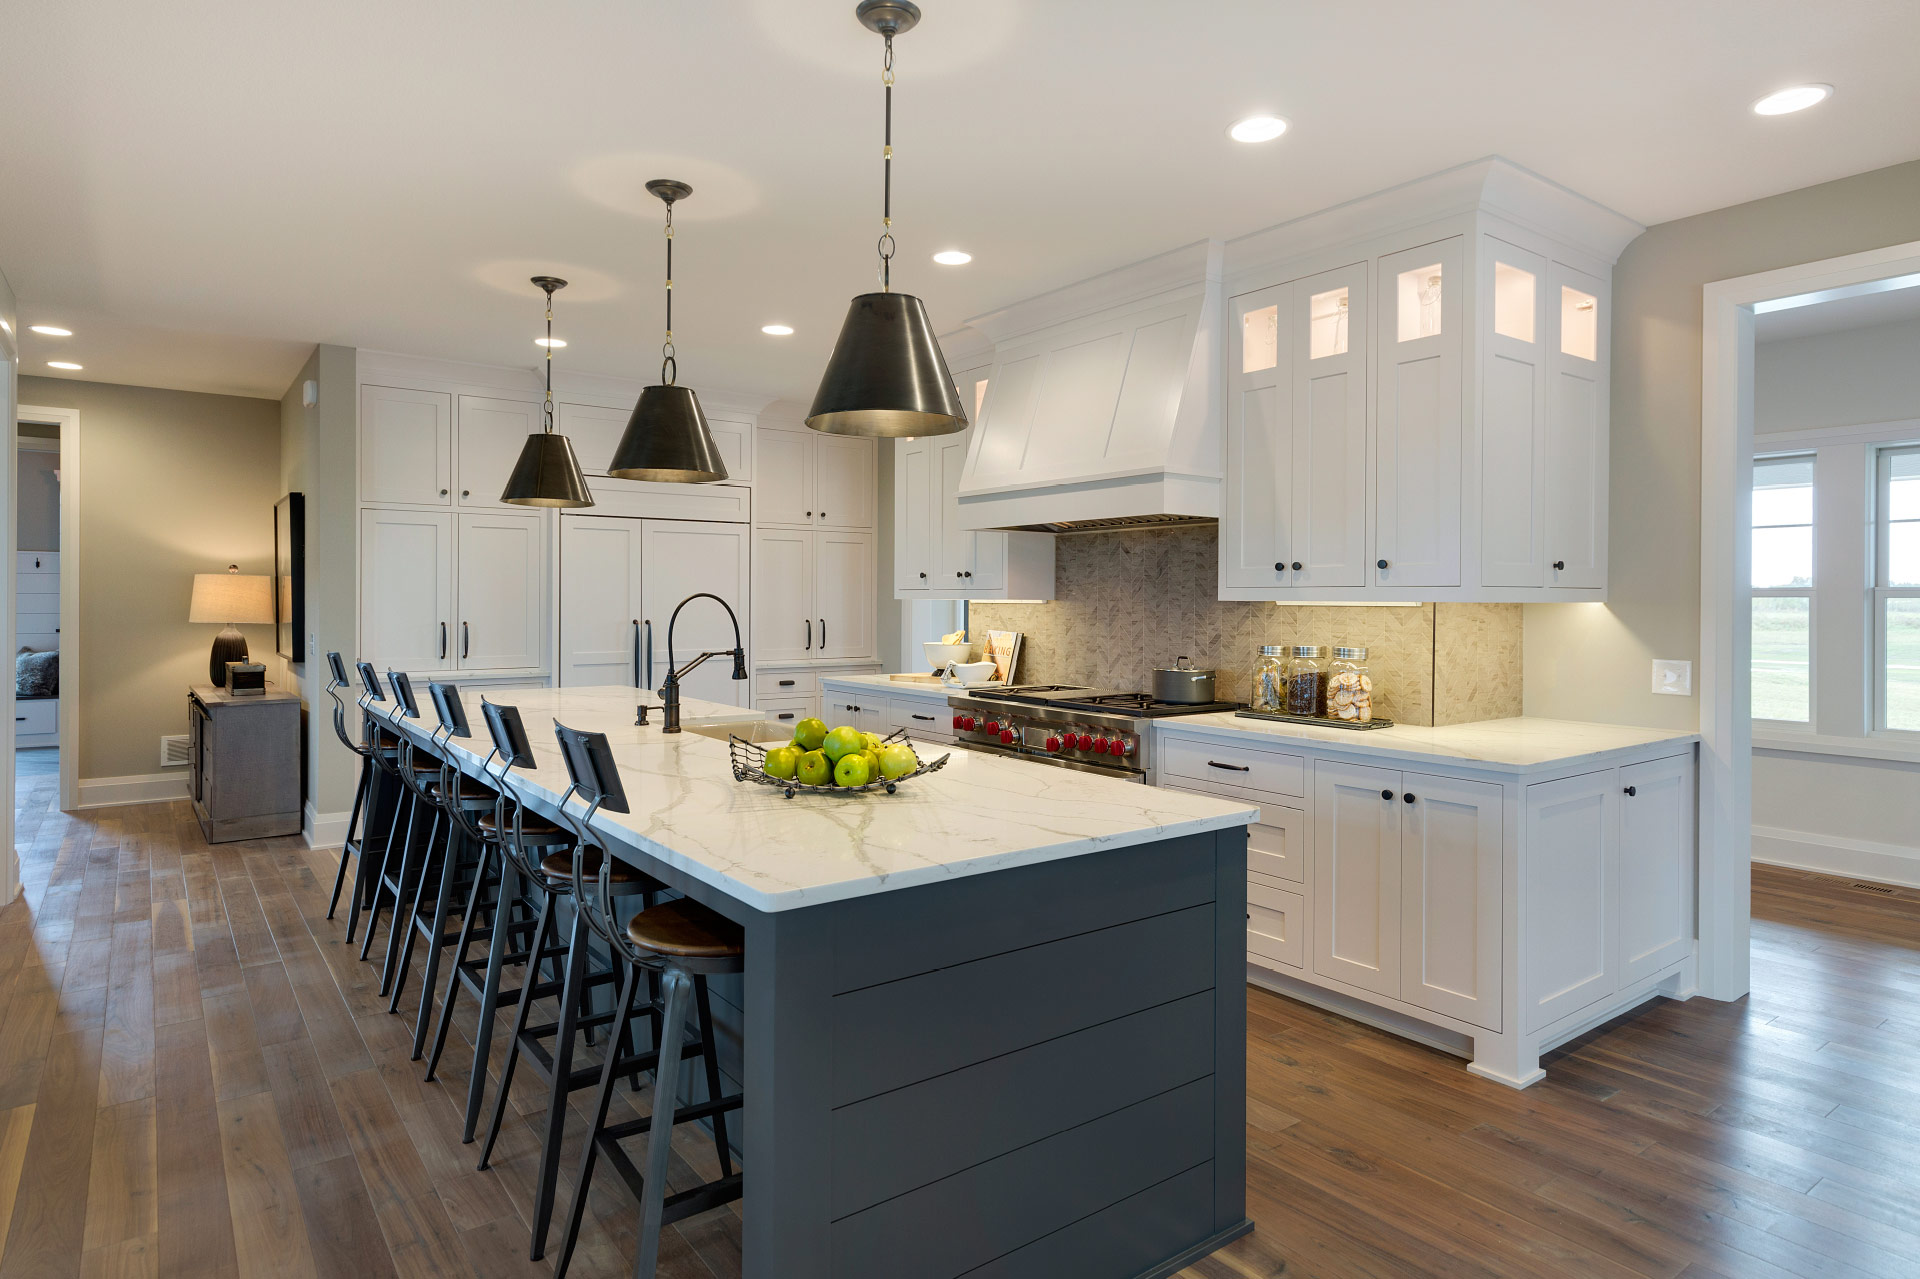 Custom home builders new home communities in lakeville for Urban farmhouse kitchen